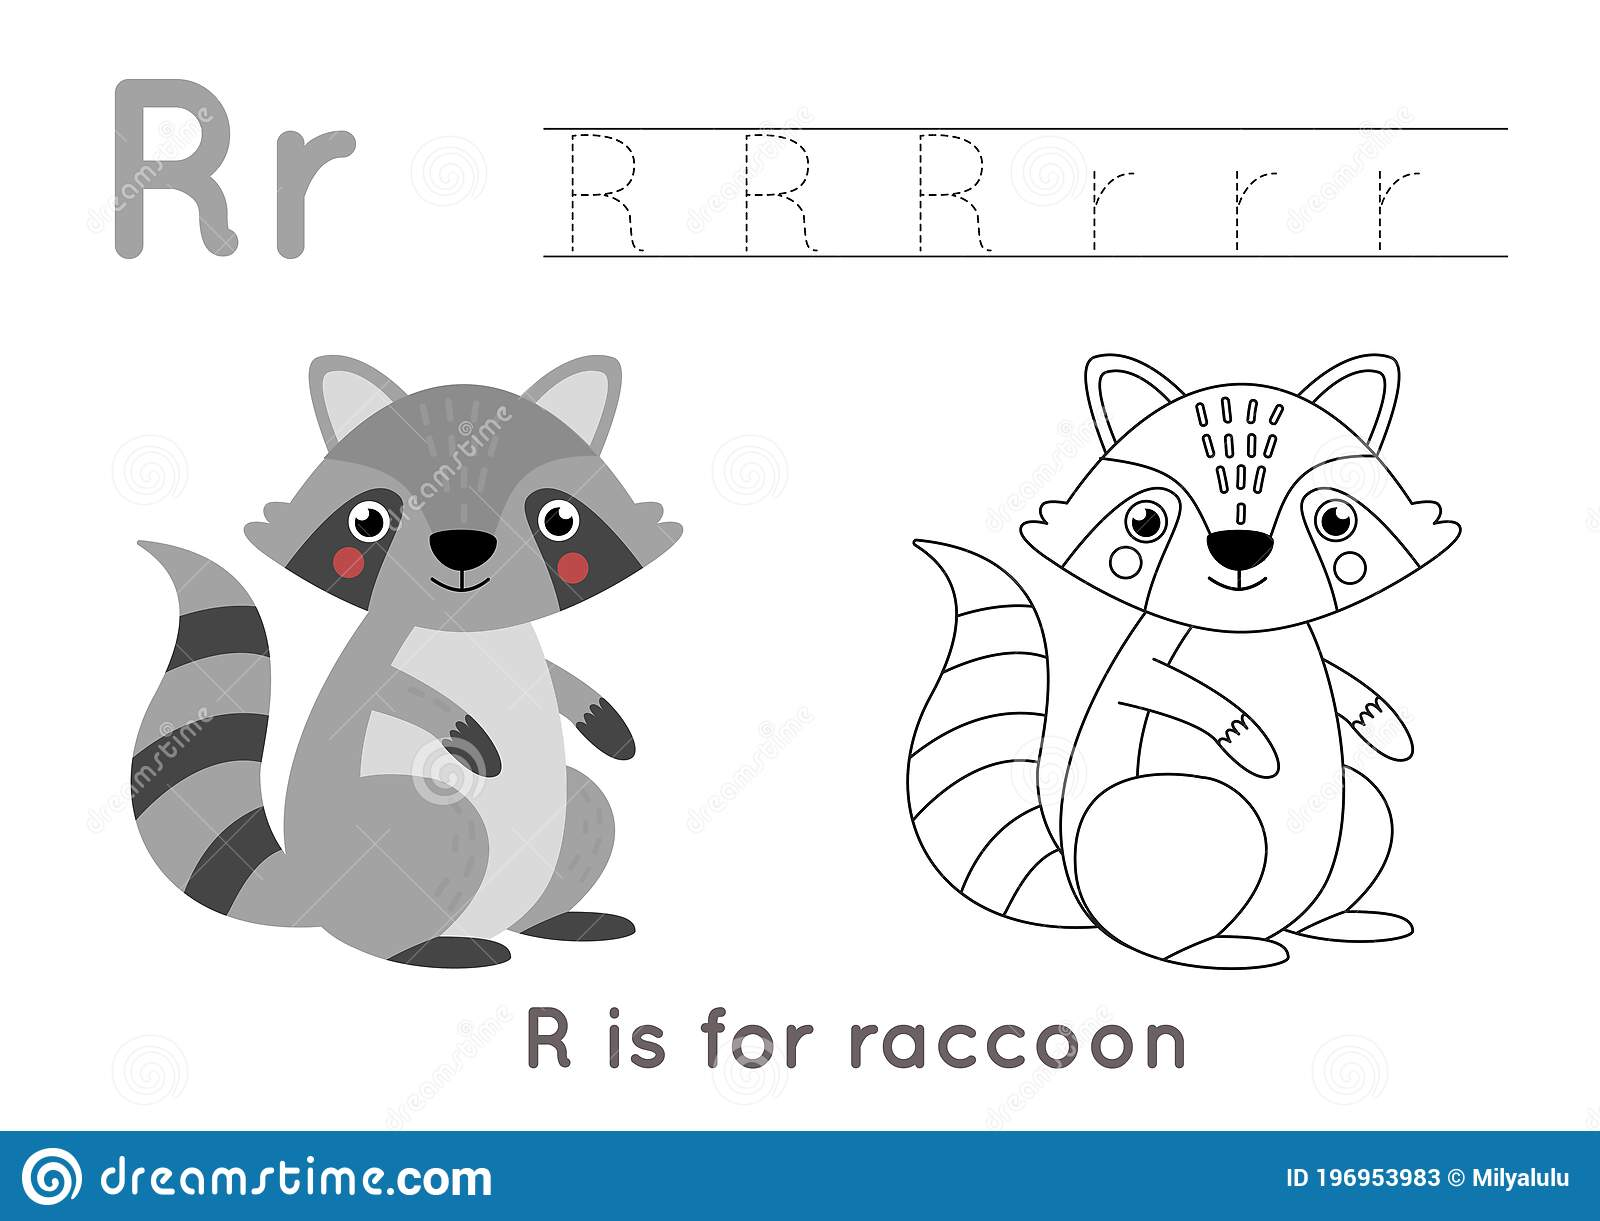 Coloring And Tracing Page With Letter R And Cute Cartoon